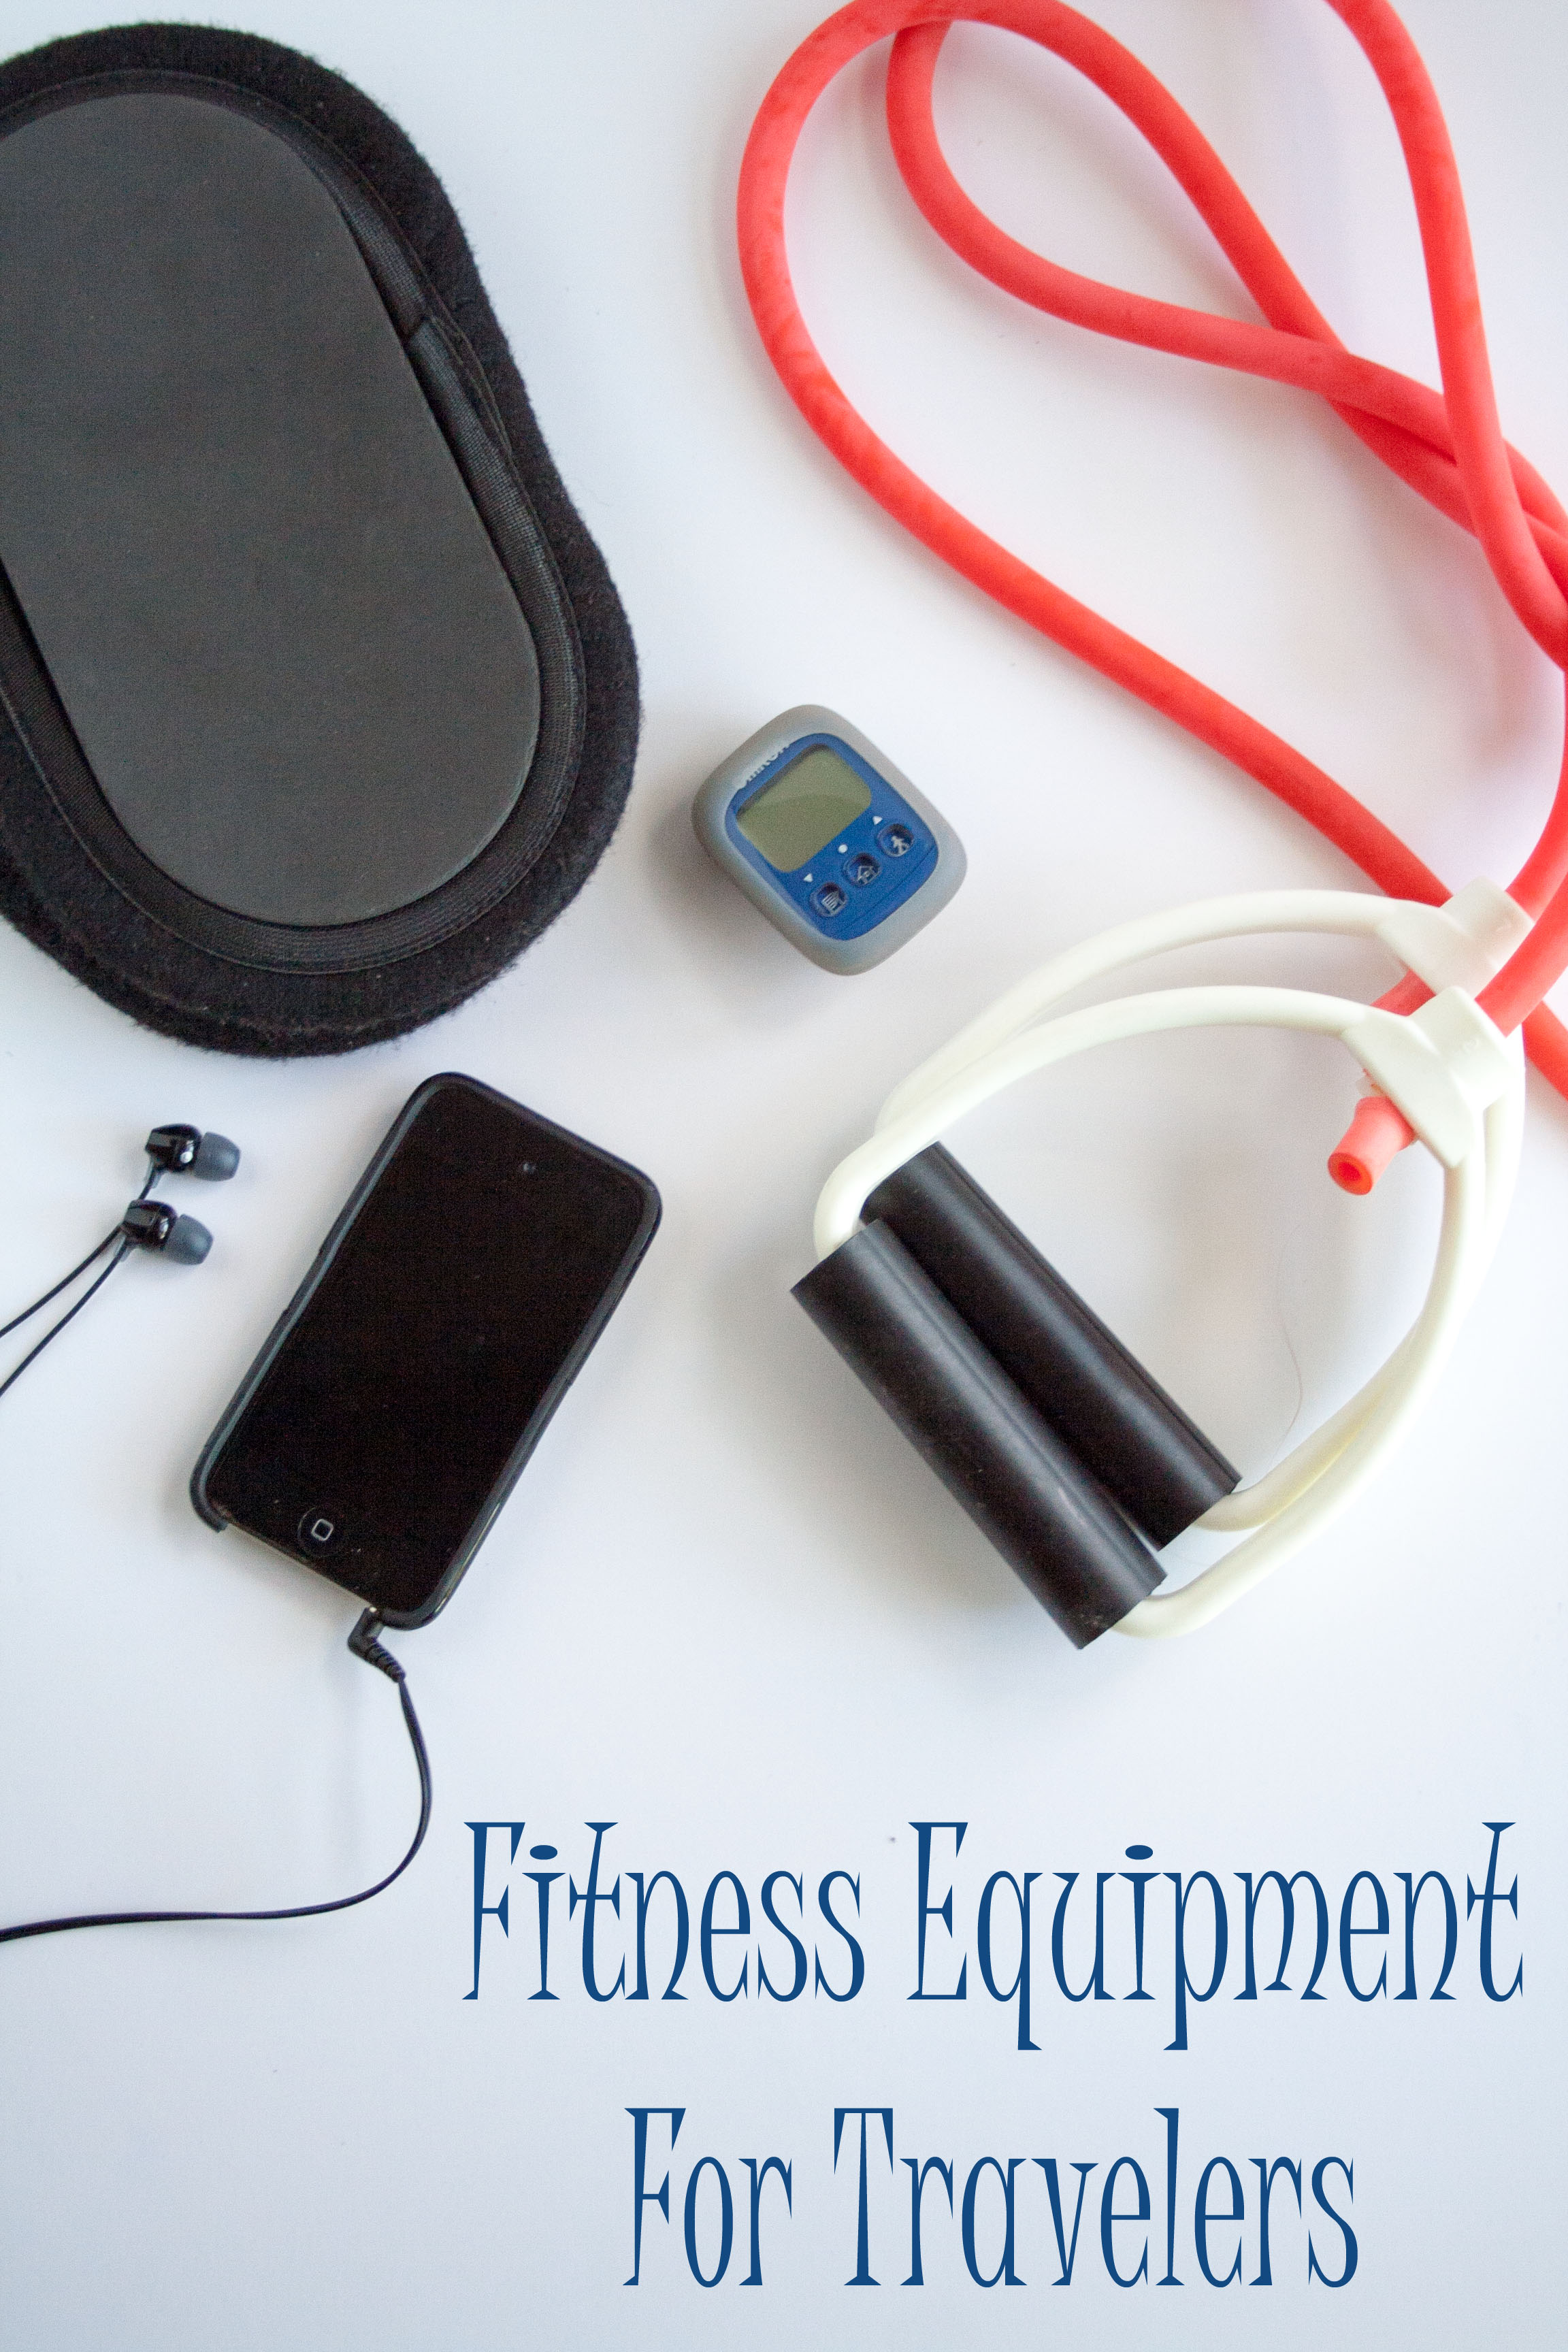 Fitness Equipment For Travelers